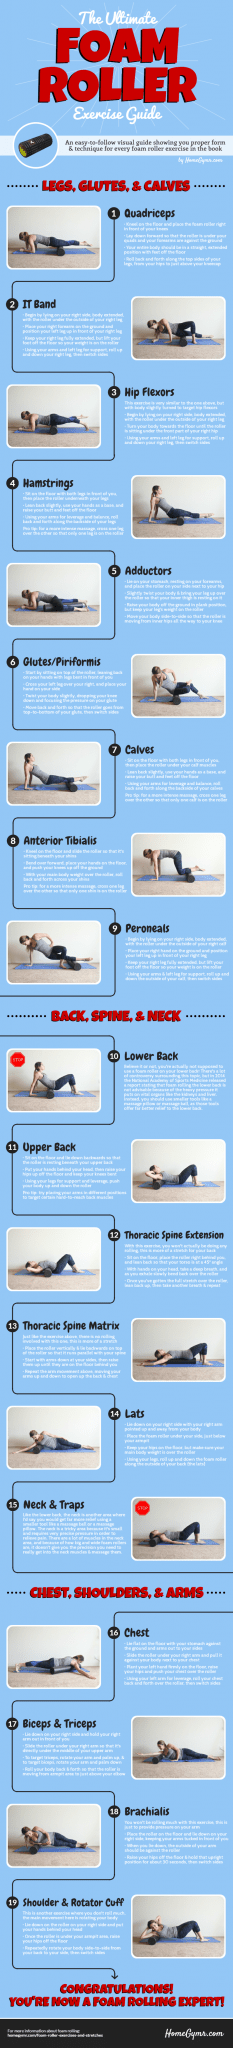 Foam Rolling Exercise Guide to teach you everything you need to know to complement your fitness & exercise routine, improve mobility and reduce back pain and knee pain - just to name a few